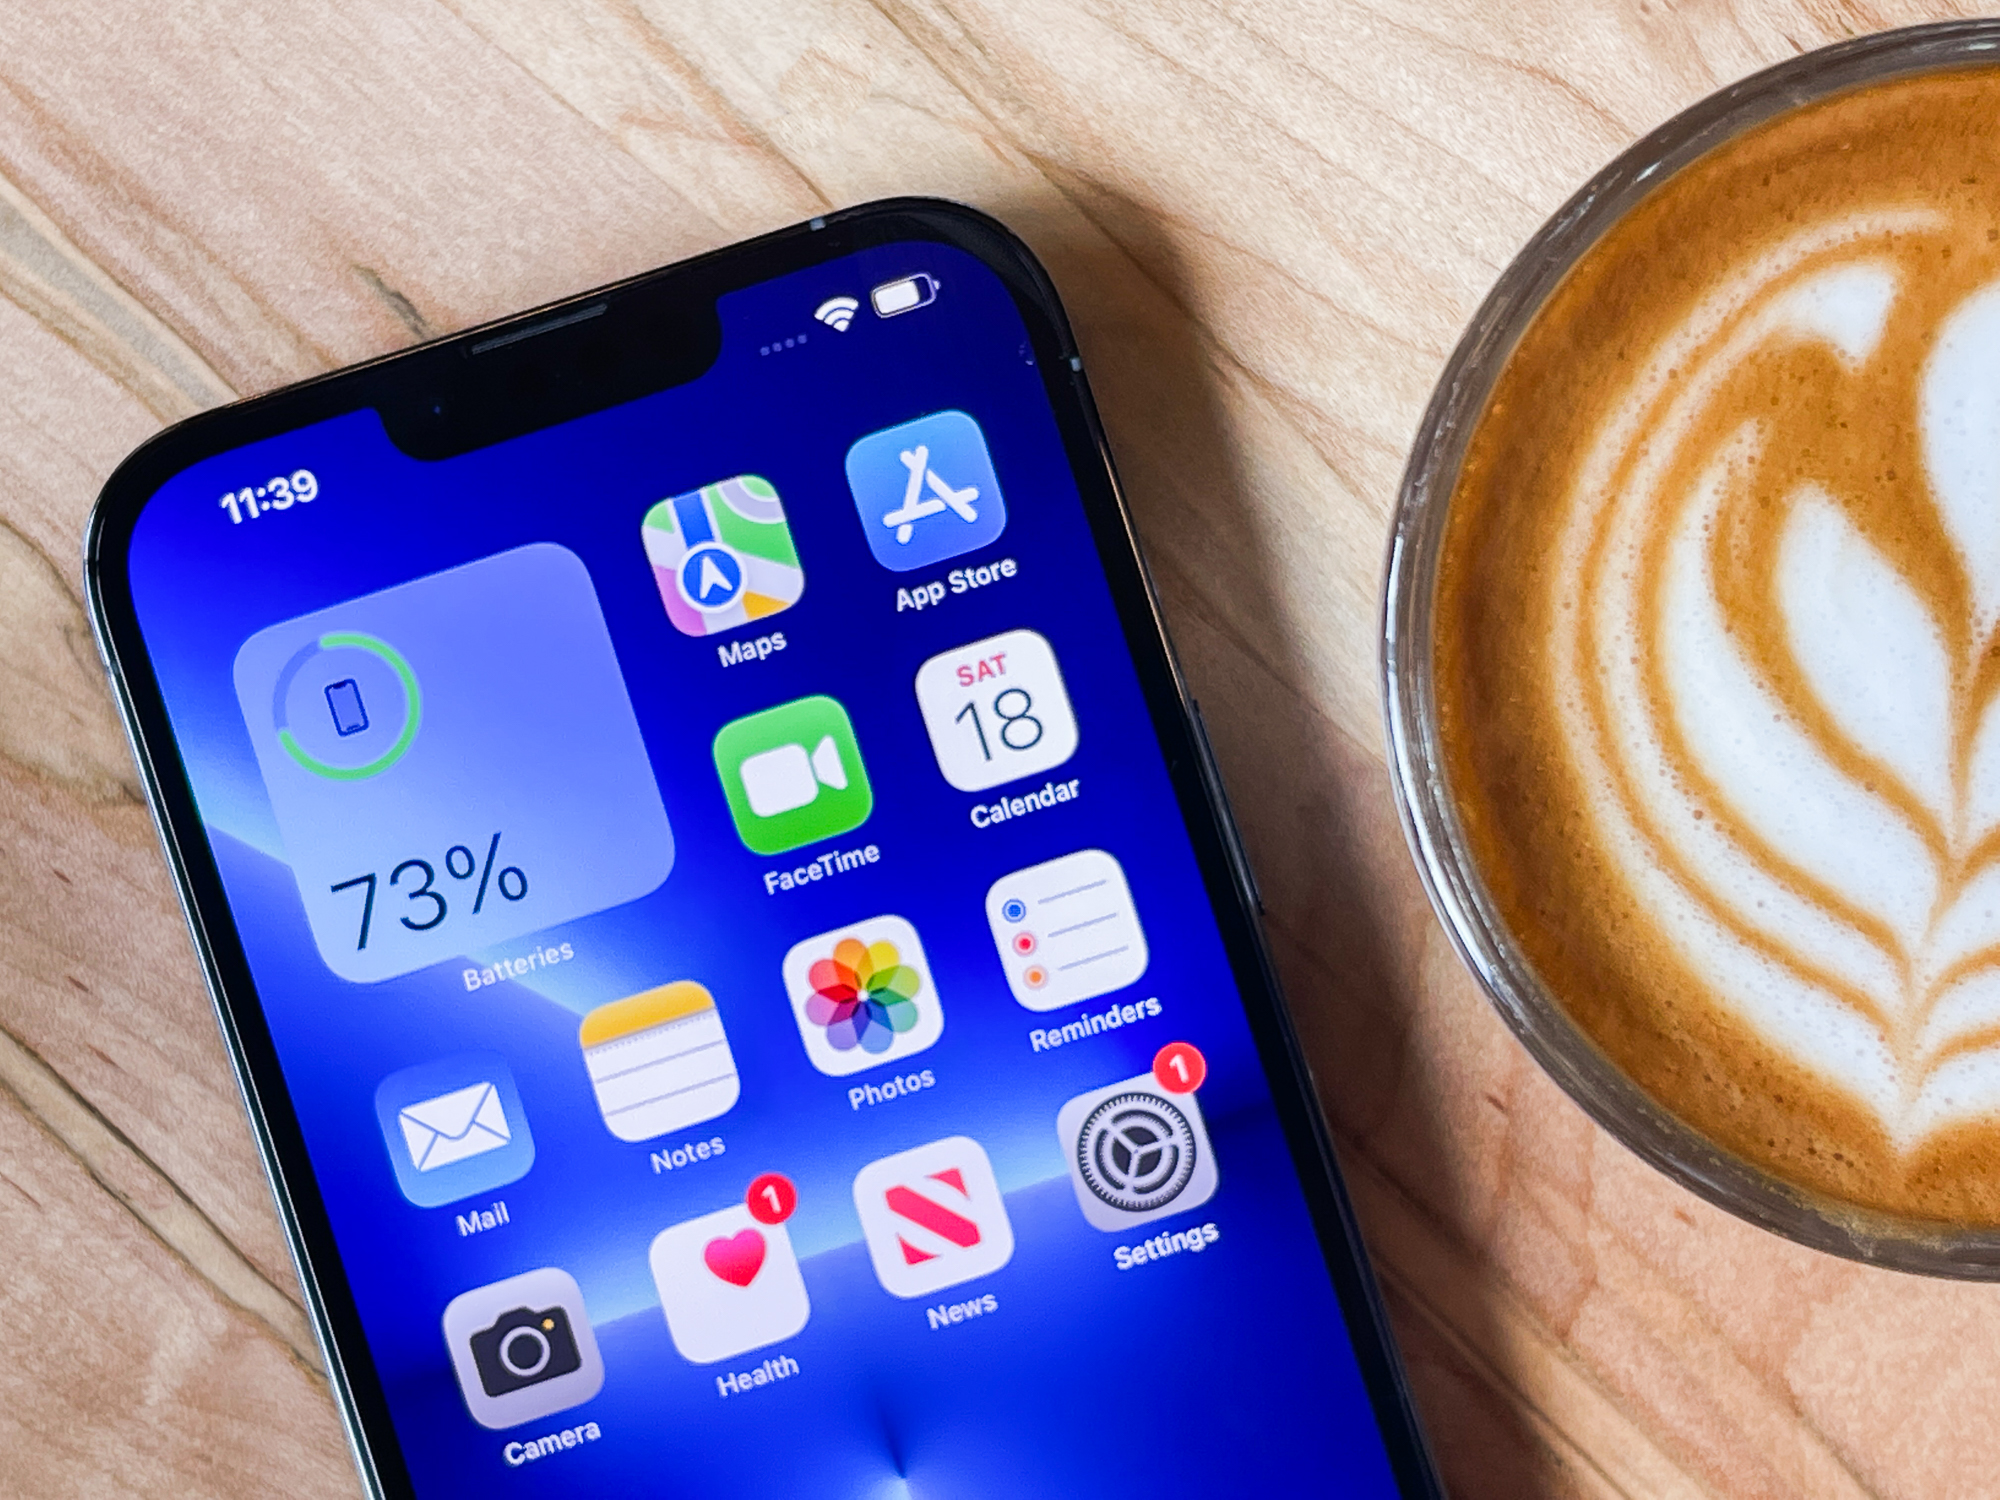 <p>Tweak some settings on your iPhone to get the most out of it.&nbsp;</p>